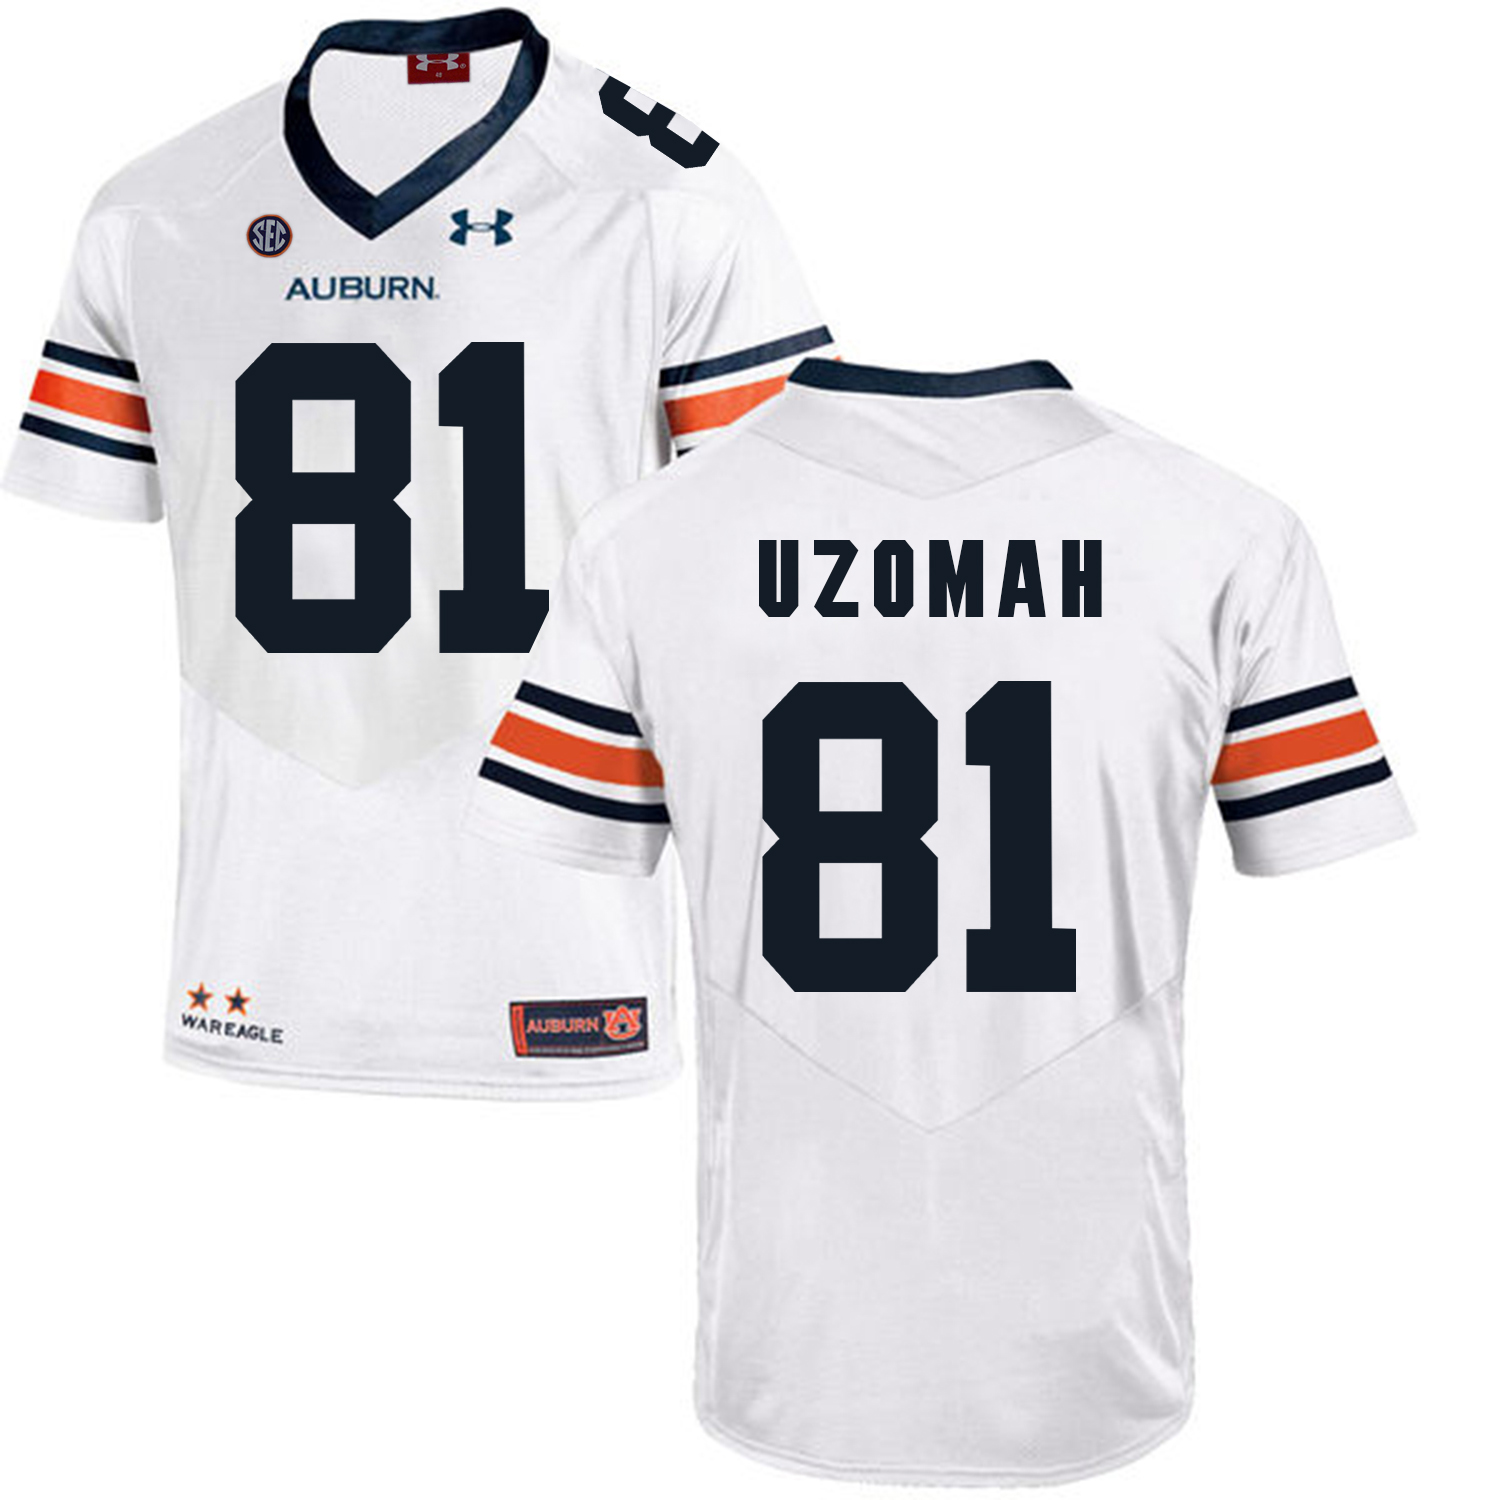 Auburn Tigers 81 C.J. Uzomah White College Football Jersey